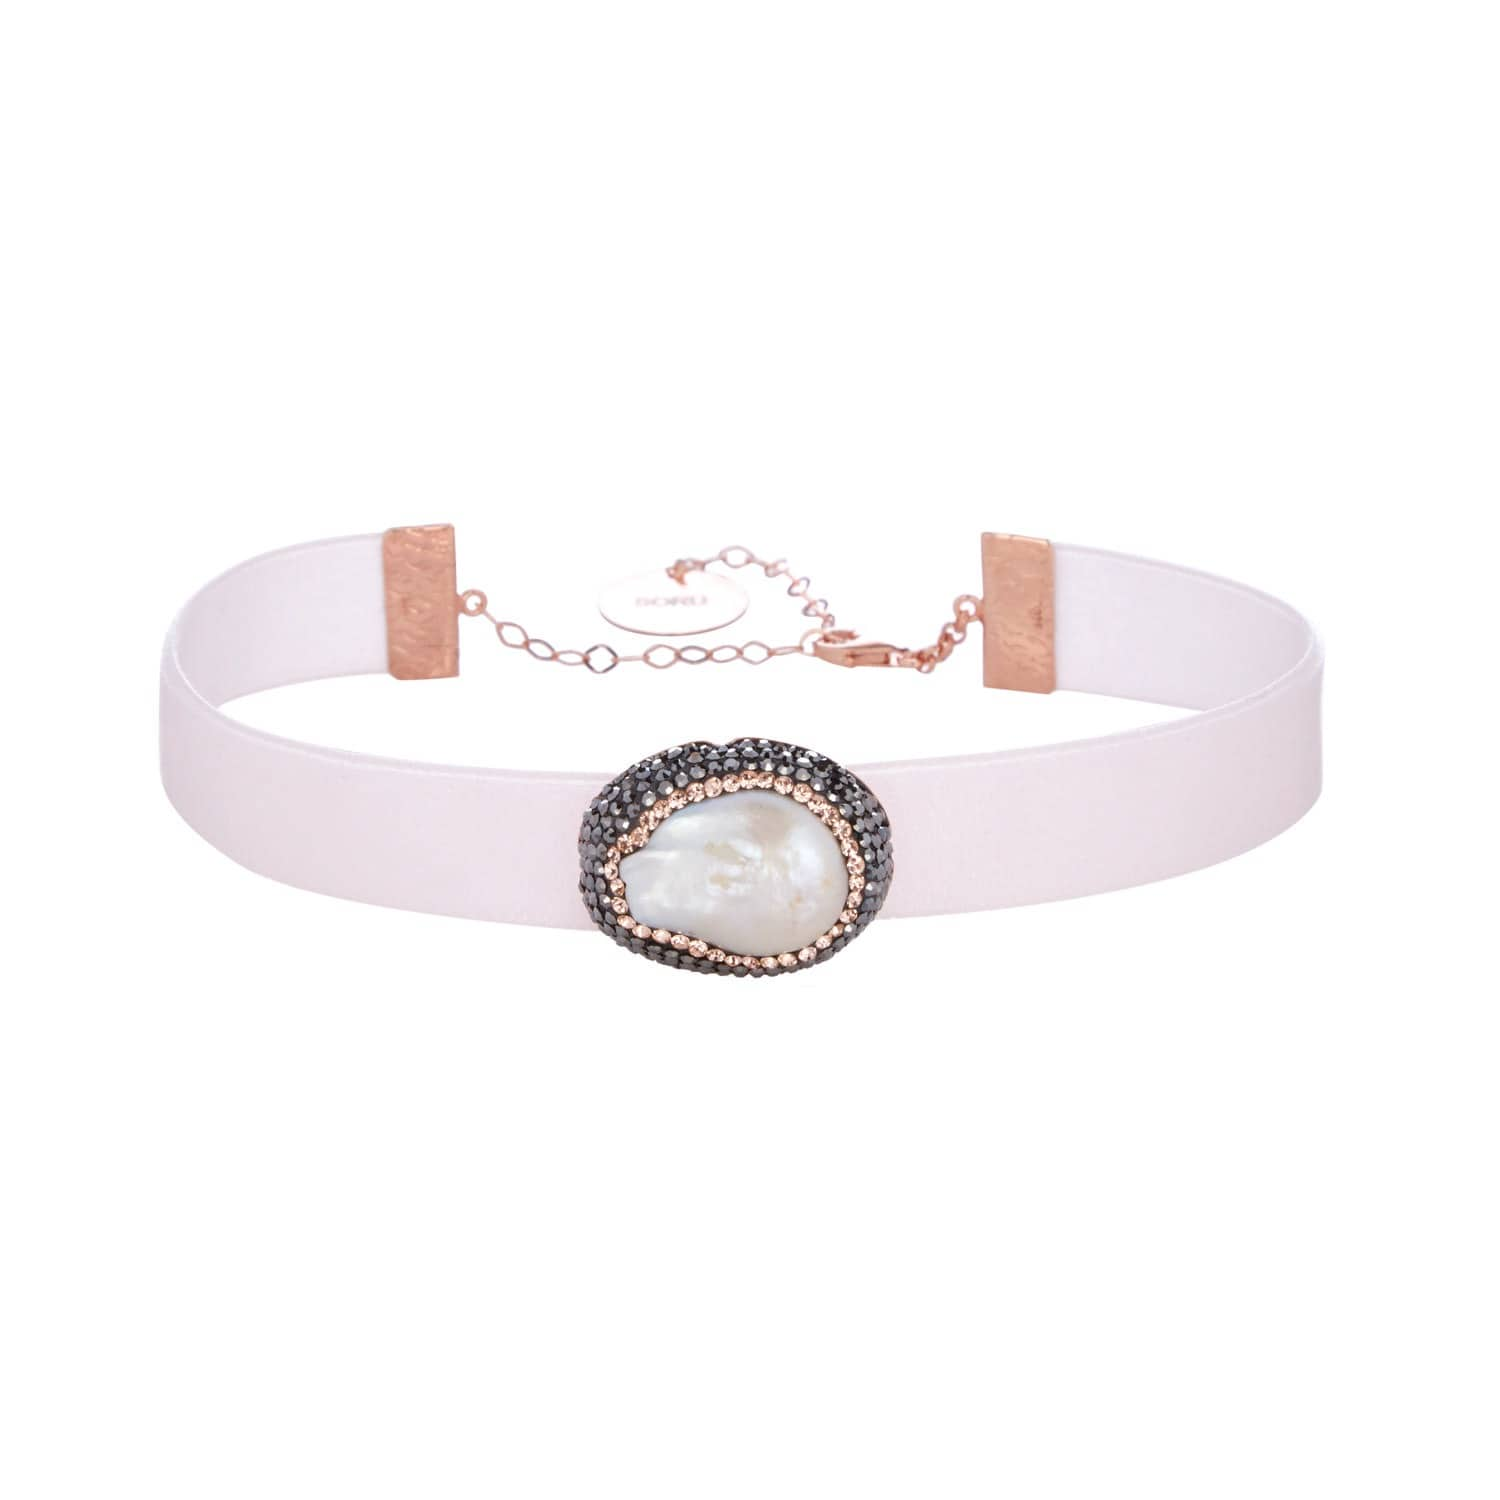 f90132e54c755 Baroque Pearl Pale Pink Choker Rose Gold by Soru Jewellery